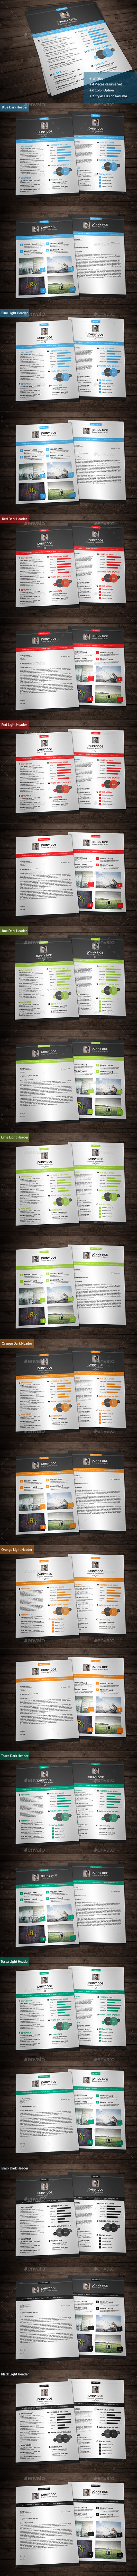 GraphicRiver Creative Resume Vol.1 10713709